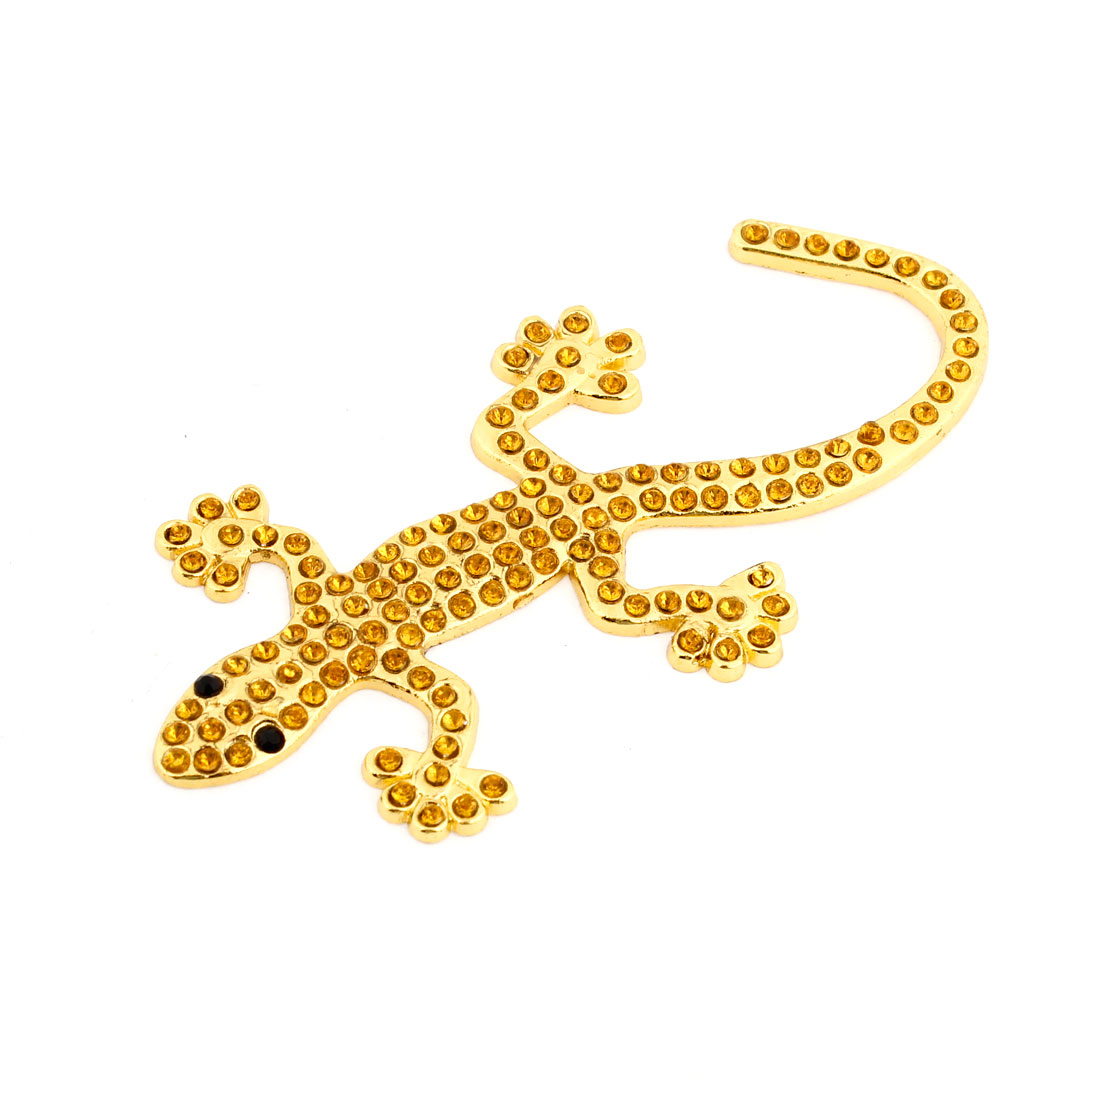 Faux Rhinestone Decor Metal Gecko Shape Decal Gold Tone Yellow for Auto